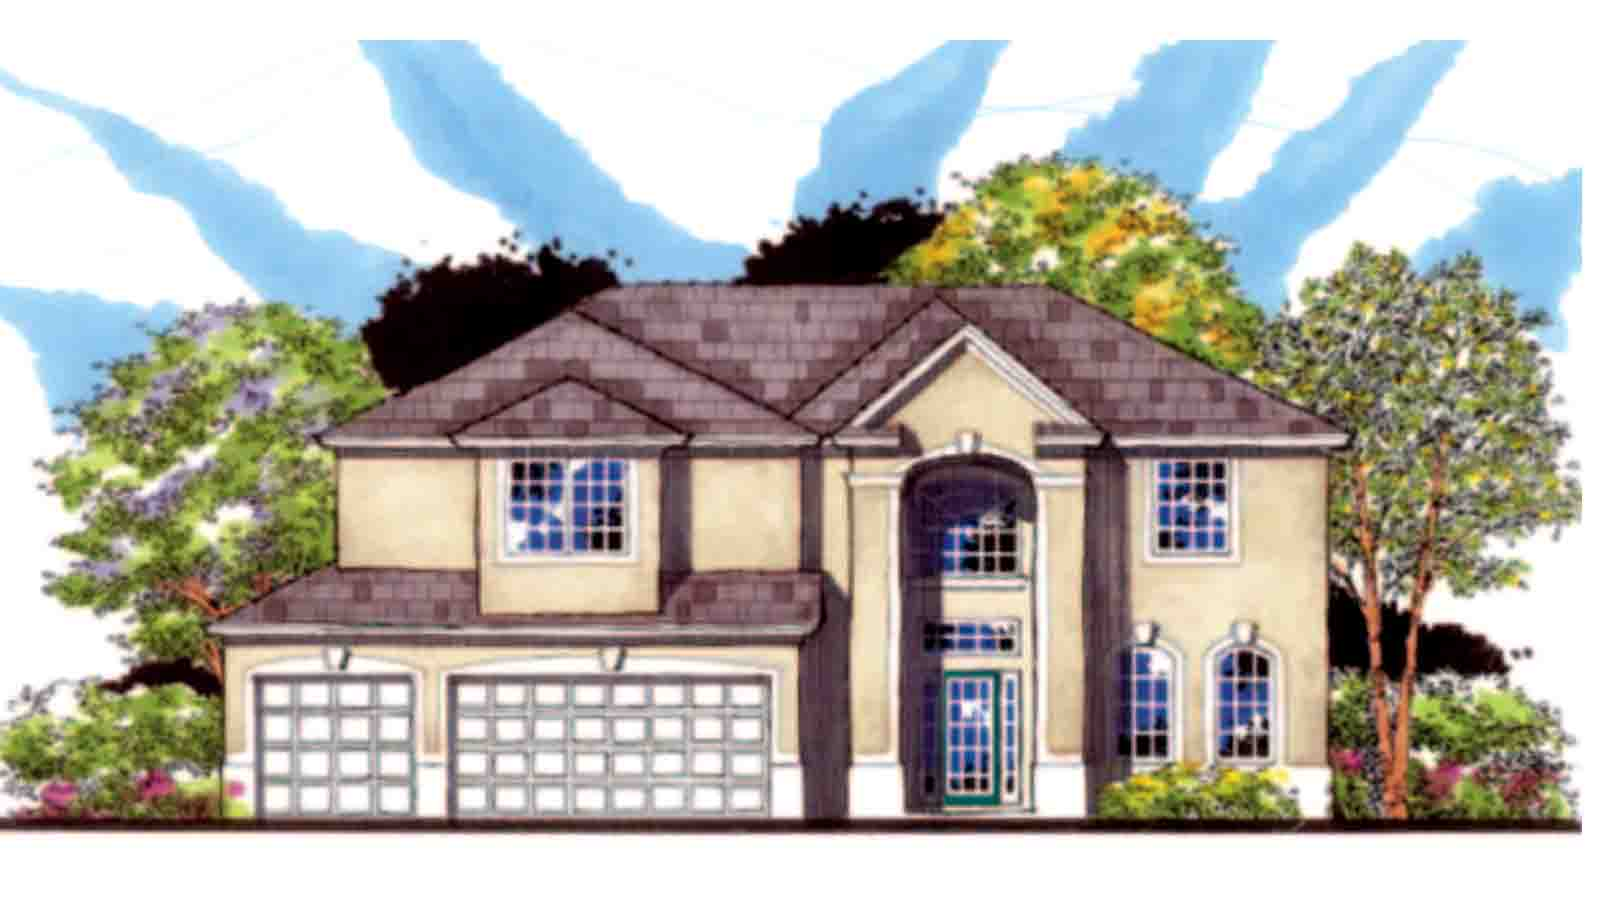 Floor Plans,2,501 SQ FT TO 3,000 SQ FT,1070